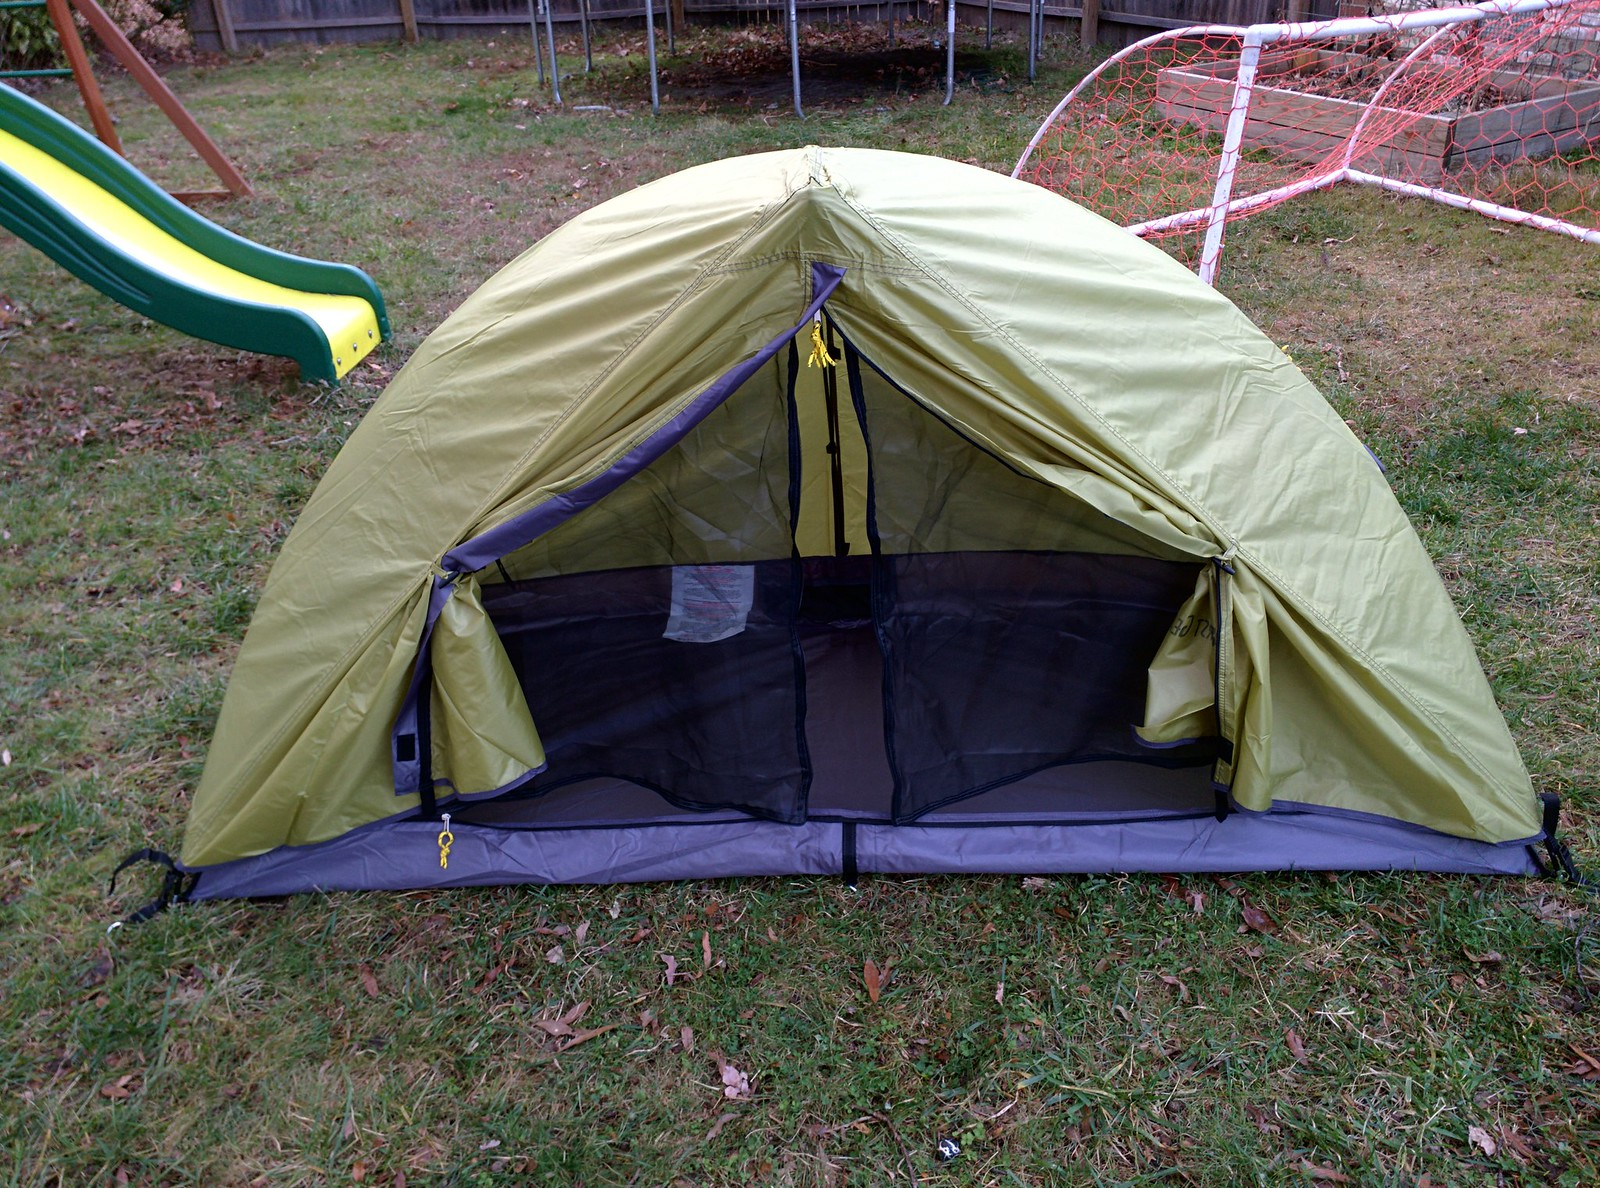 [ IMG] & Backpacking tents lets see u0027em! | Page 3 | Bushcraft USA Forums